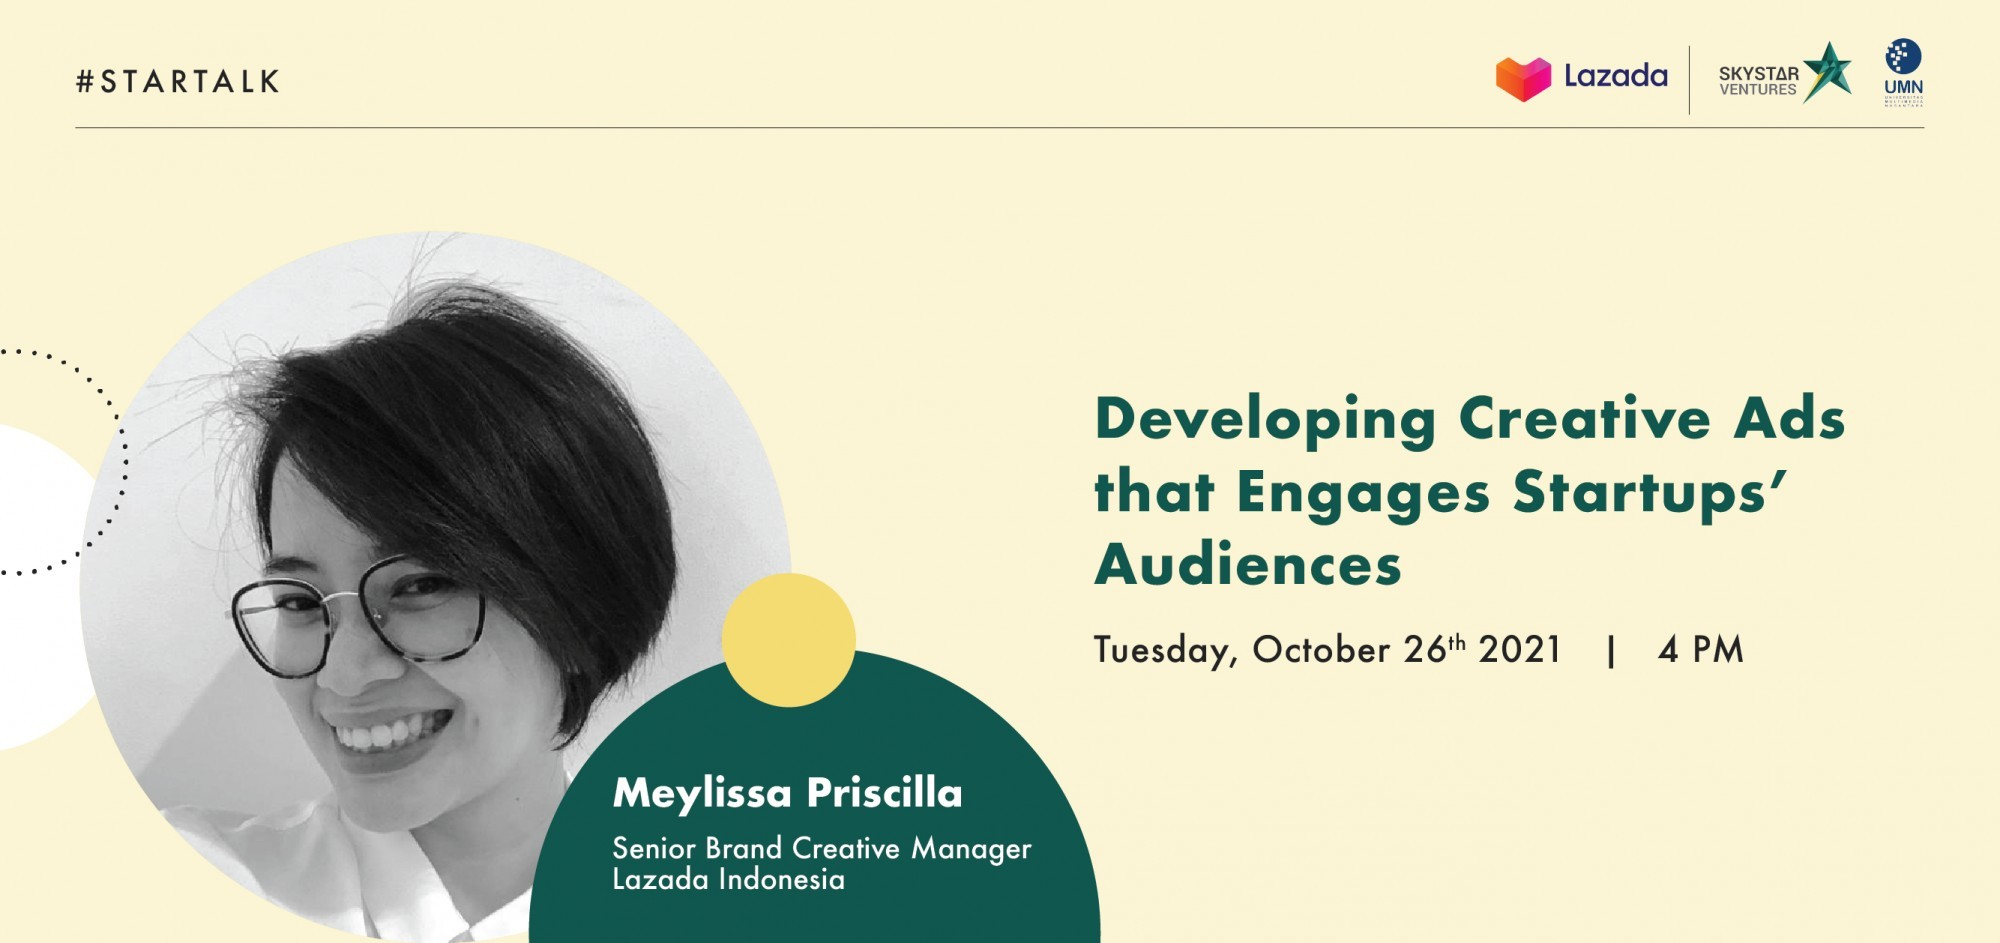 STARTALK - Developing Creative Ads that Engages Startups' Audiences